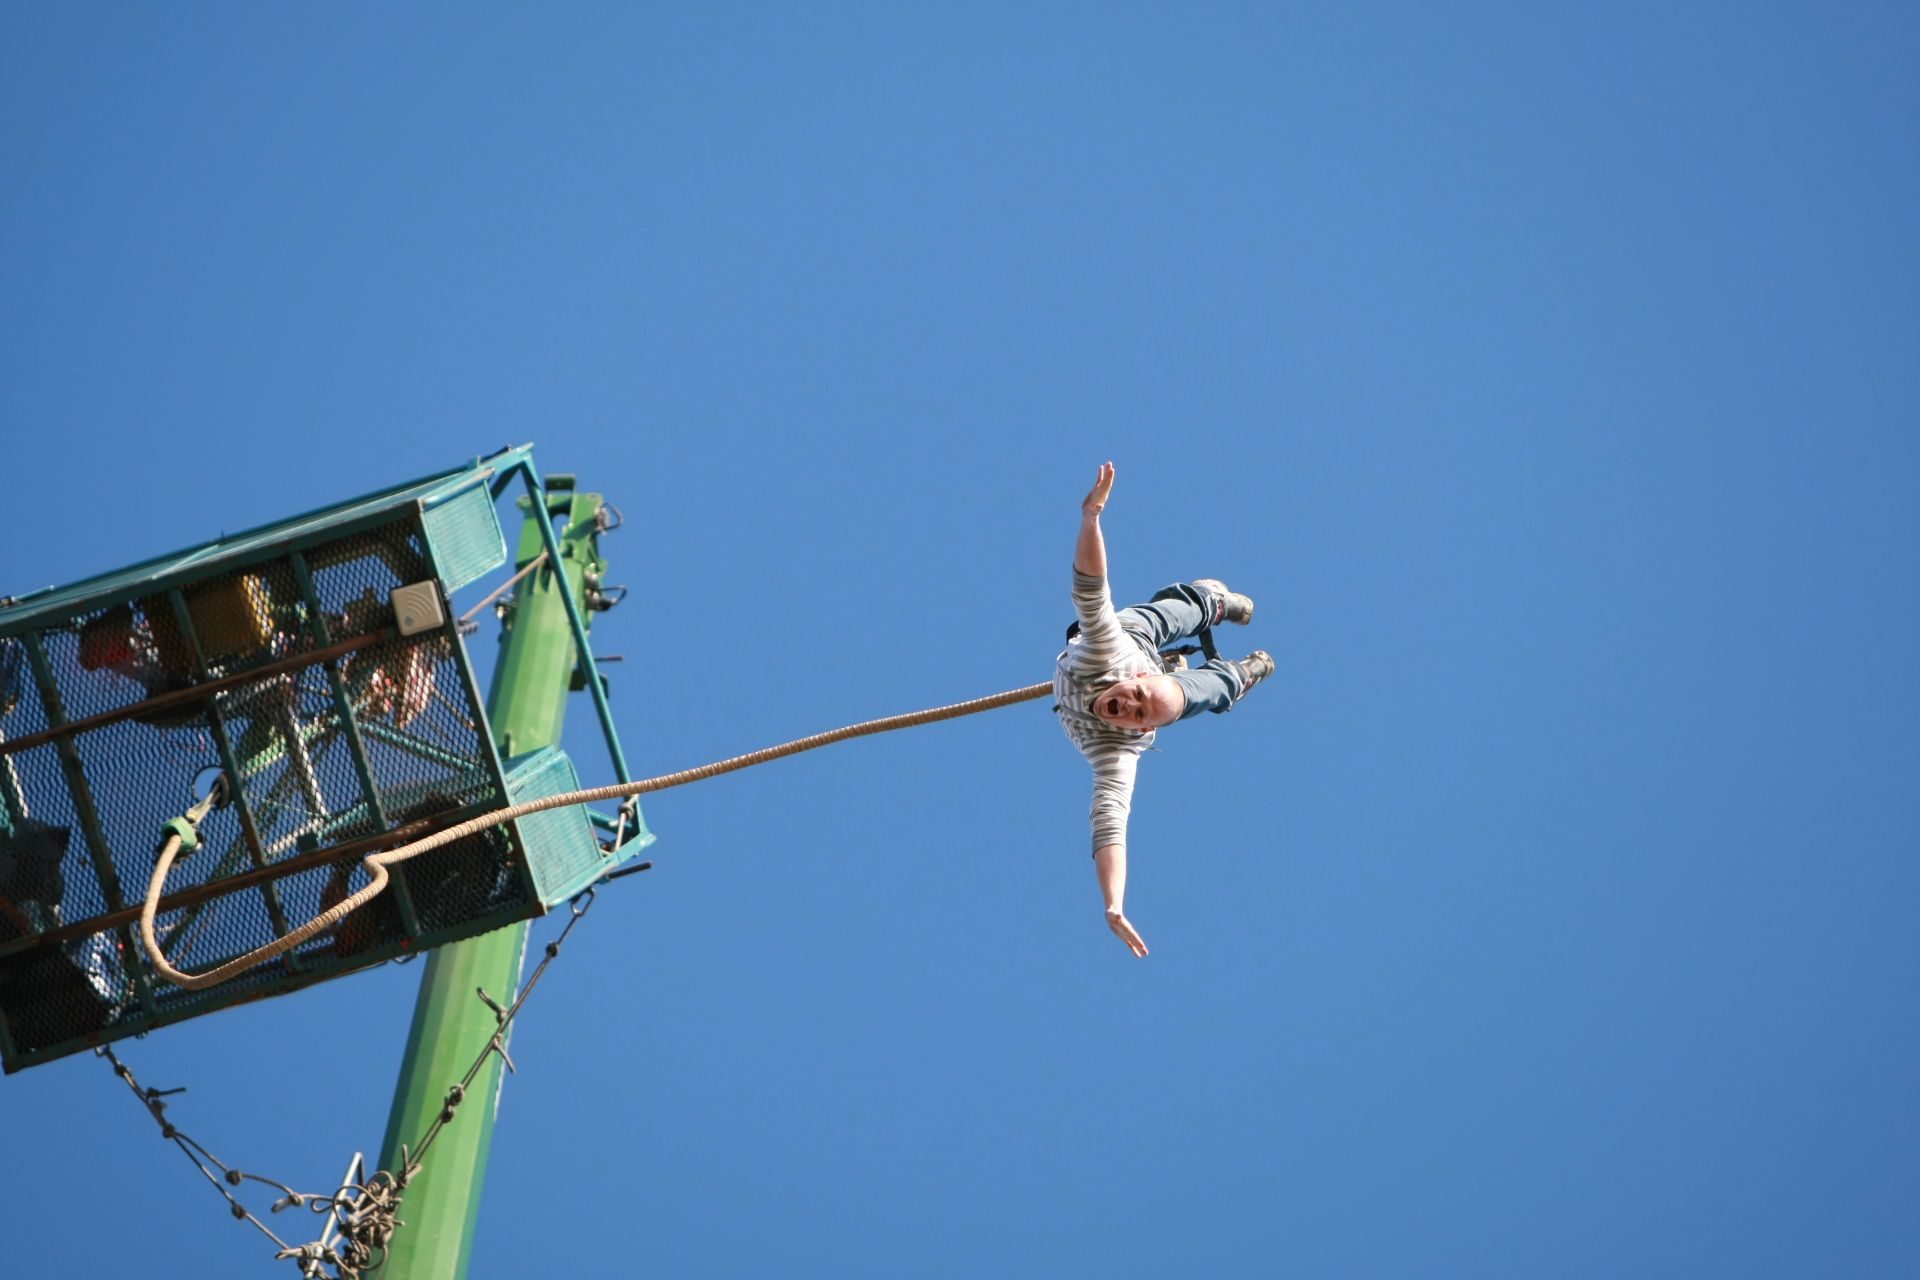 guy-jumping-from-crane-bungee-jumping-uk